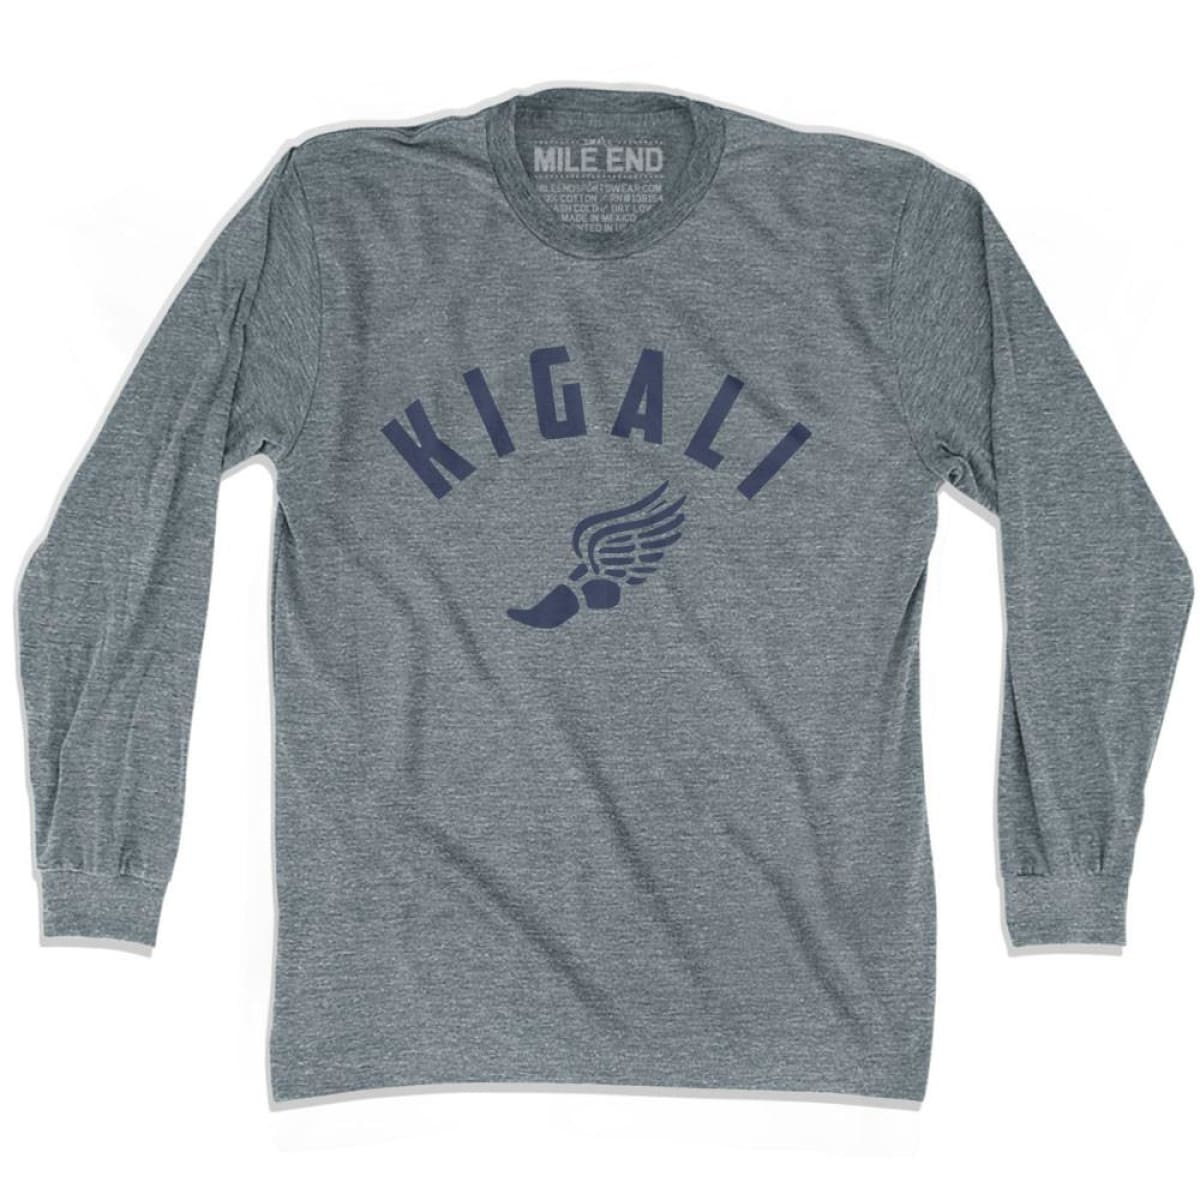 Kigali Track Long Sleeve T-shirt - Athletic Grey / Adult X-Small - Mile End Track